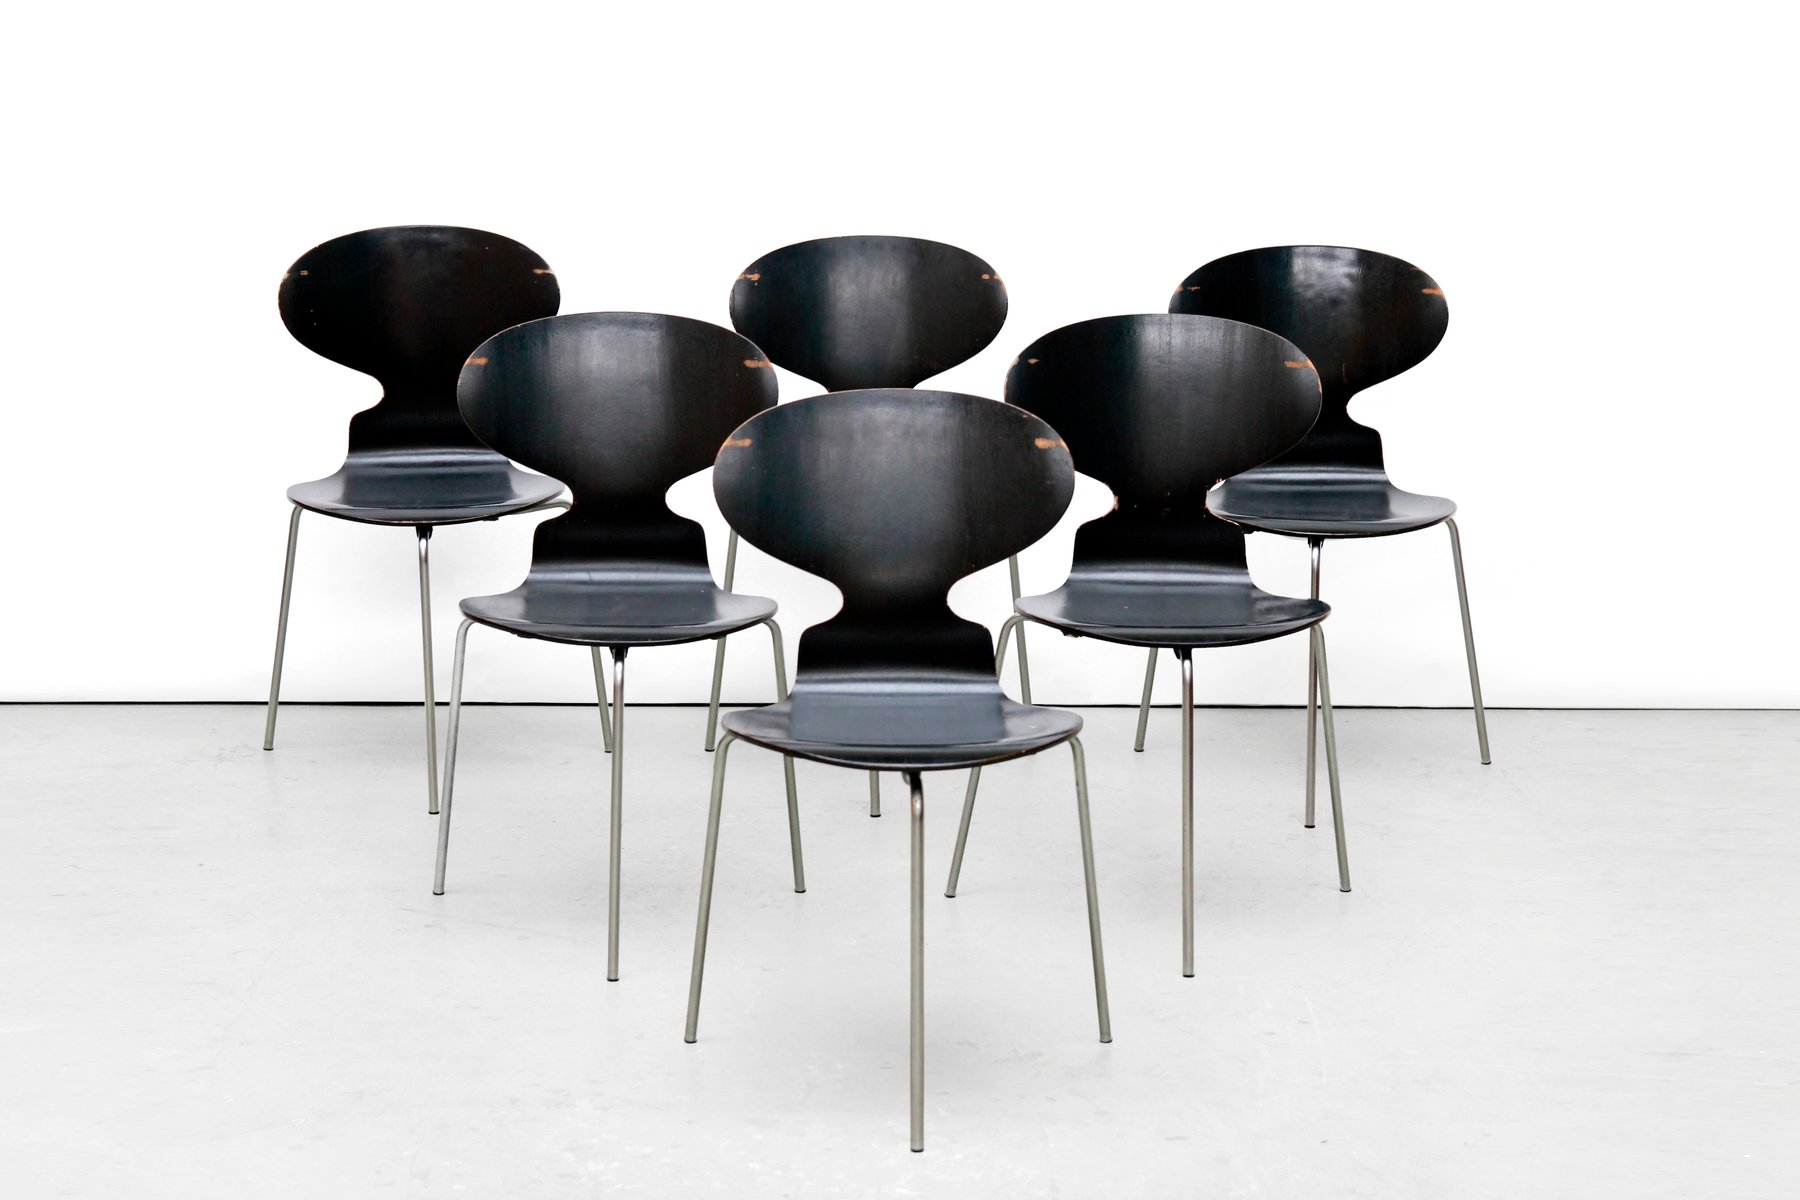 Model FH 3100 Ant Chairs By Arne Jacobsen For Fritz Hansen, 1969, Set Of 6  For Sale At Pamono